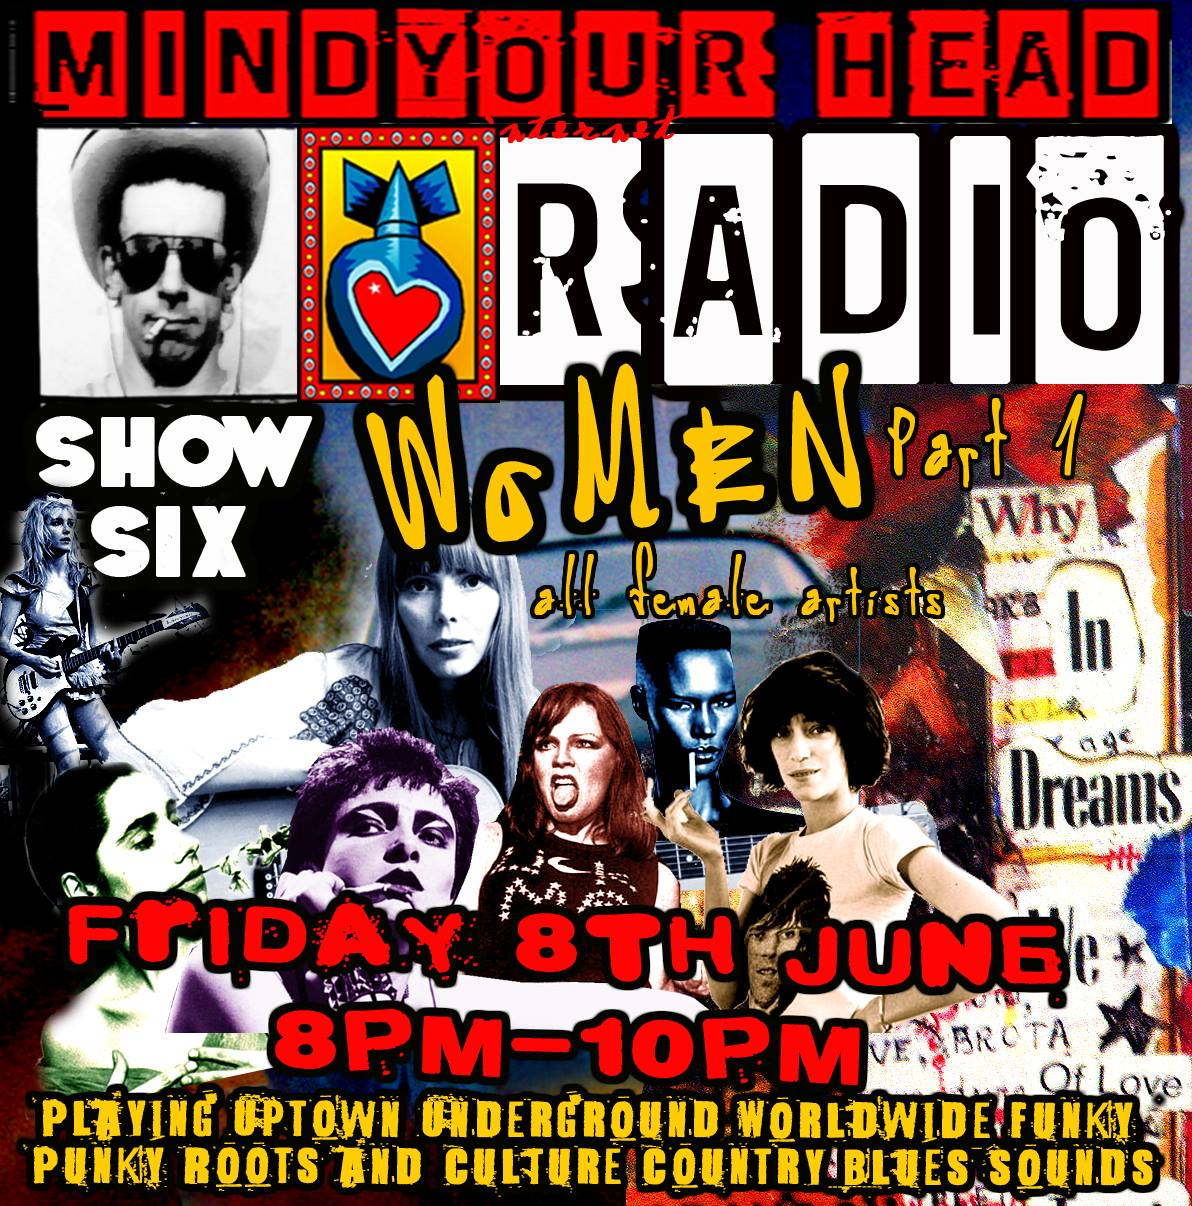 Mind Your Head Radio